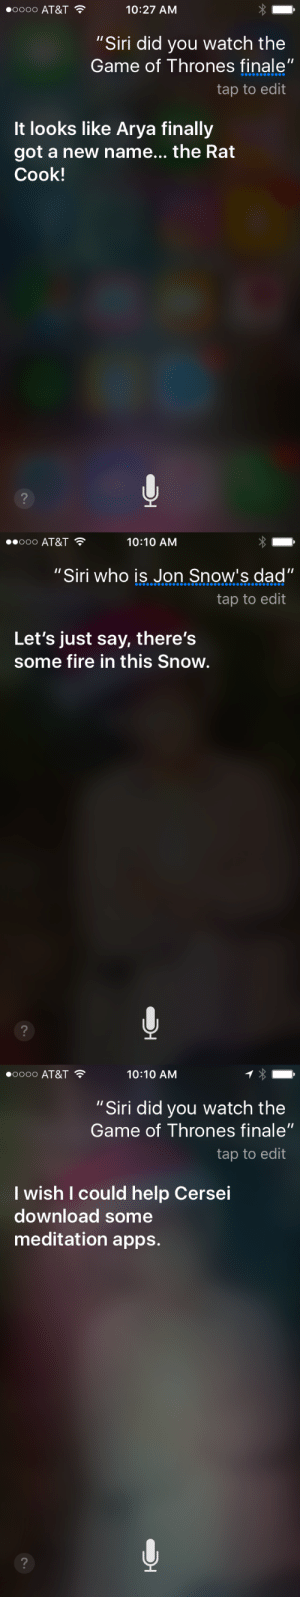 """theverge:  Good one, Siri. : 00000 AT&T  10:27 AM  """"Siri did you watch the  Game of Thrones finale""""  tap to edit  It looks like Arya finally  got a new name... the Rat  Cook!   ooo AT&T  10:10 AM  """"Siri who is Jon Snow's dad""""  tap to edit  Let's just say, there's  some fire in this Snow.   0000 AT&T  10:10 AM  """"Siri did you watch the  Game of Thrones finale""""  tap to edit  l wish I could help Cersei  download some  meditation apps. theverge:  Good one, Siri."""